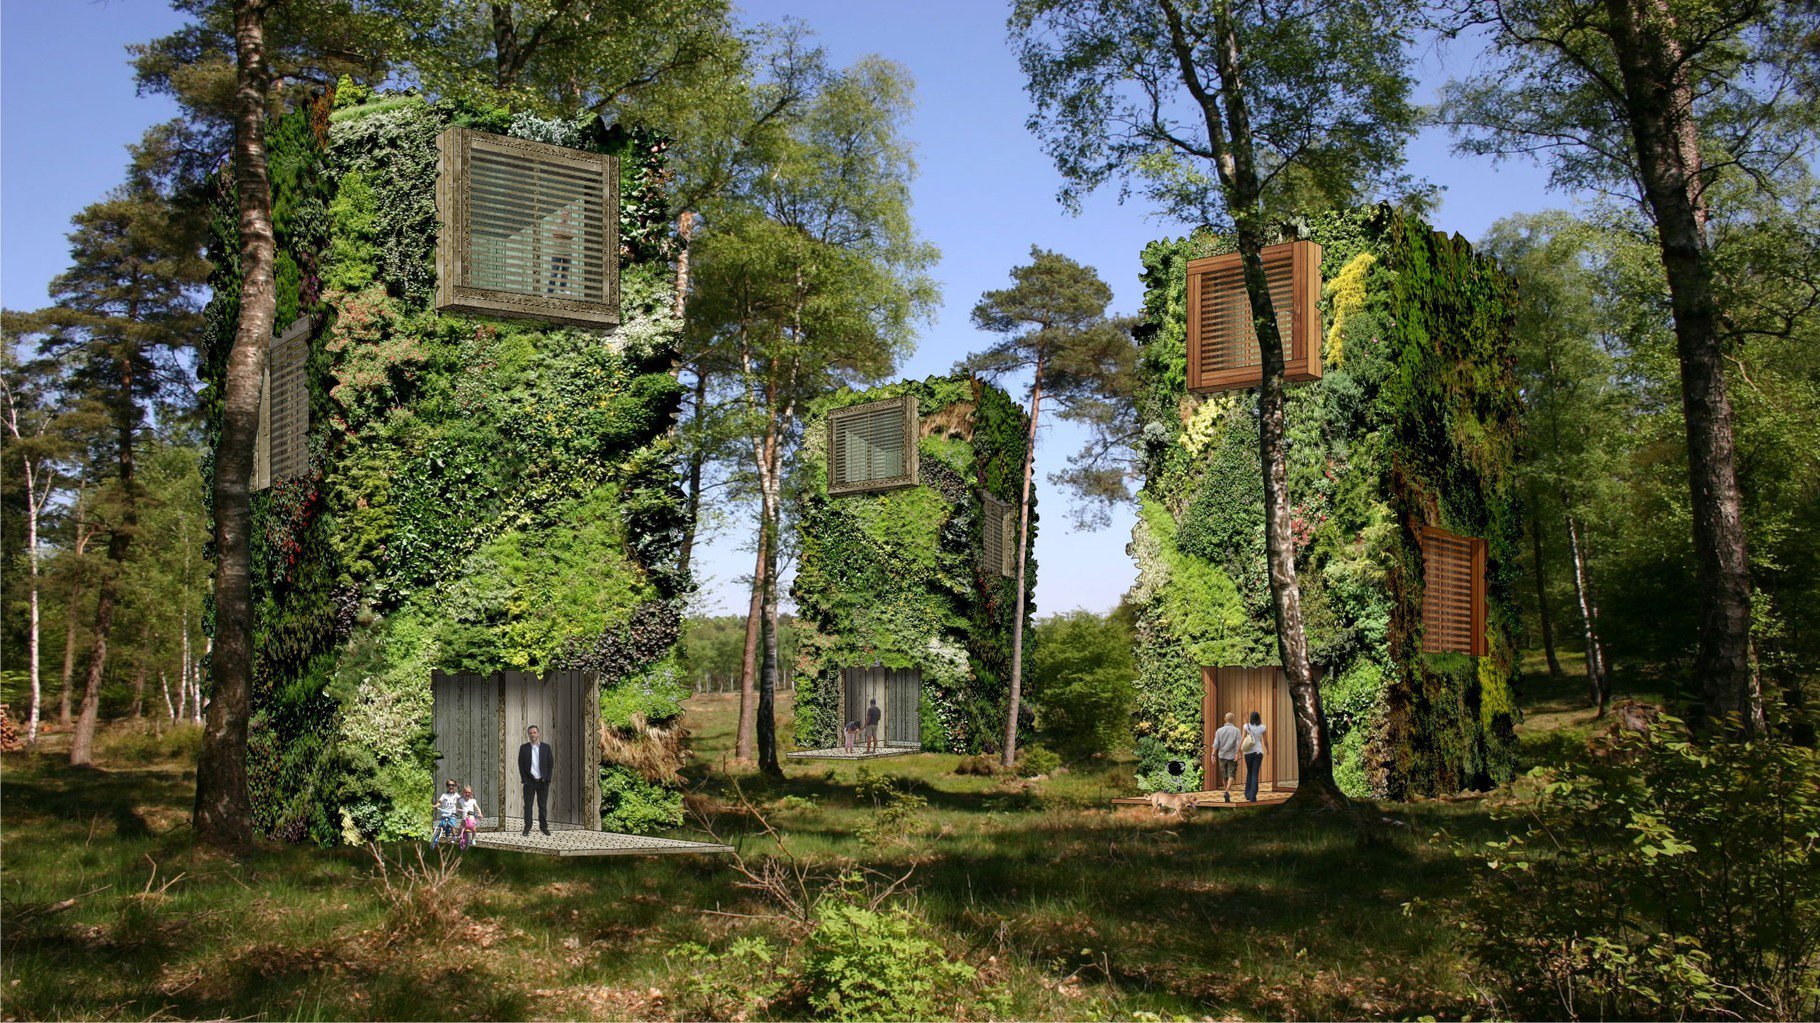 architecture answers to the human need to become one with nature